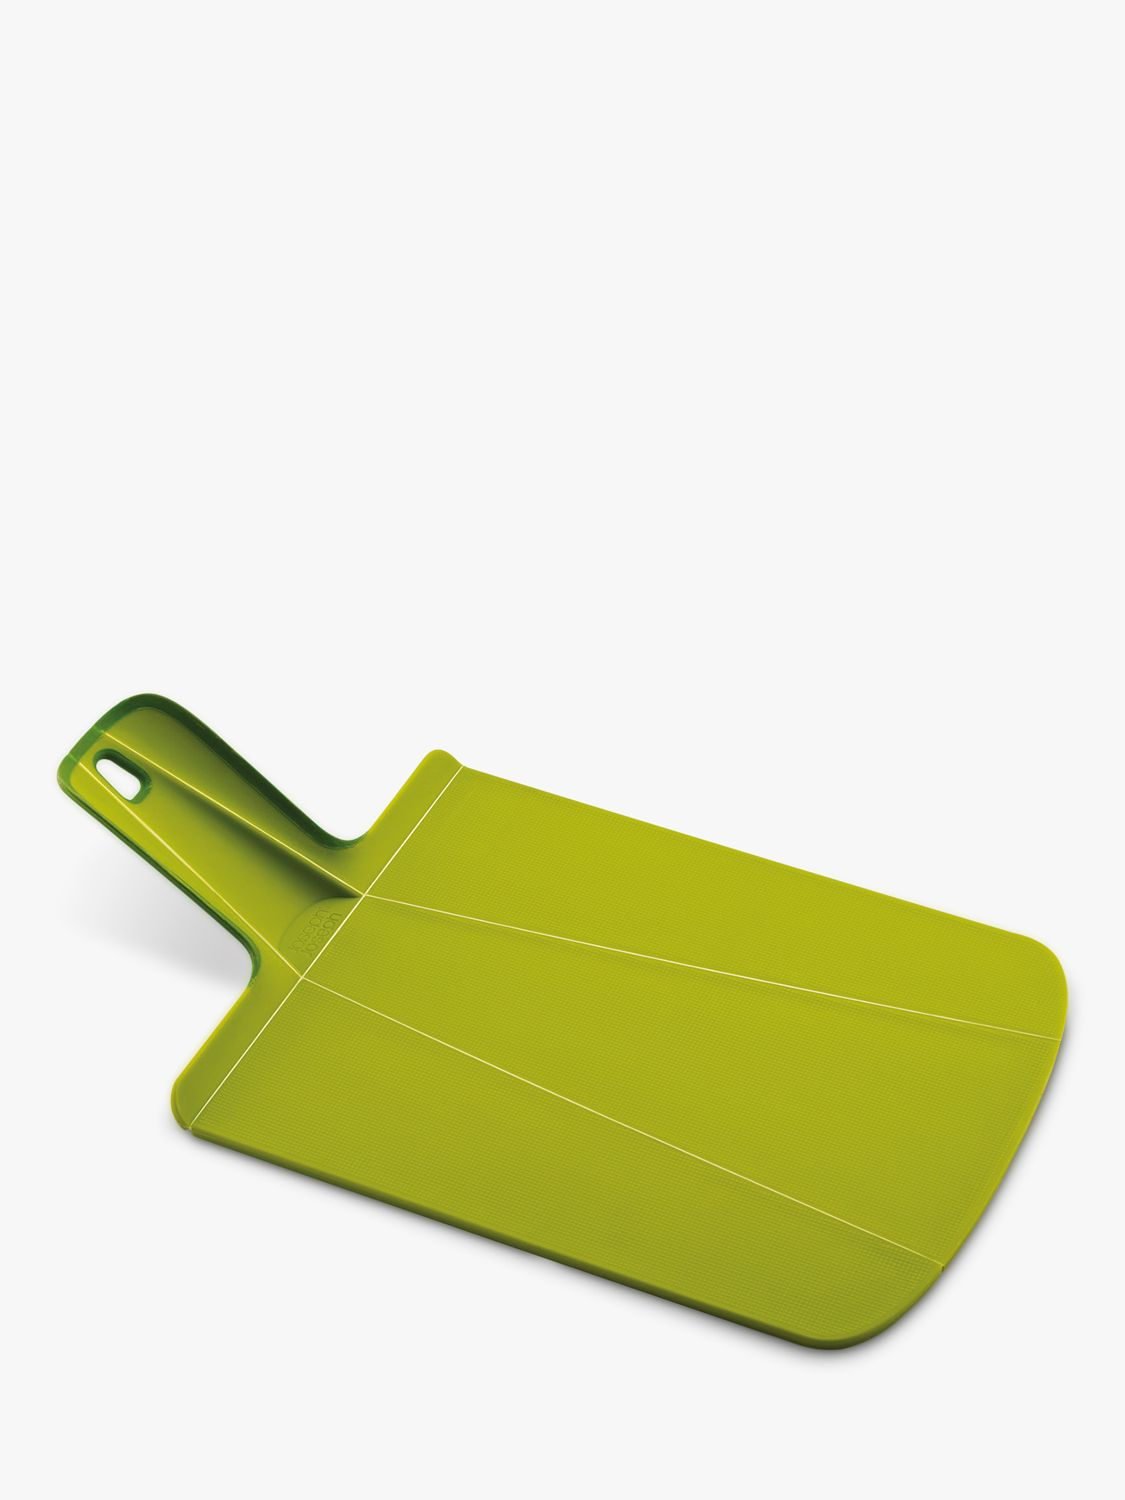 Joseph Joseph Joseph Joseph Chop2Pot Chopping Board, Small, Green